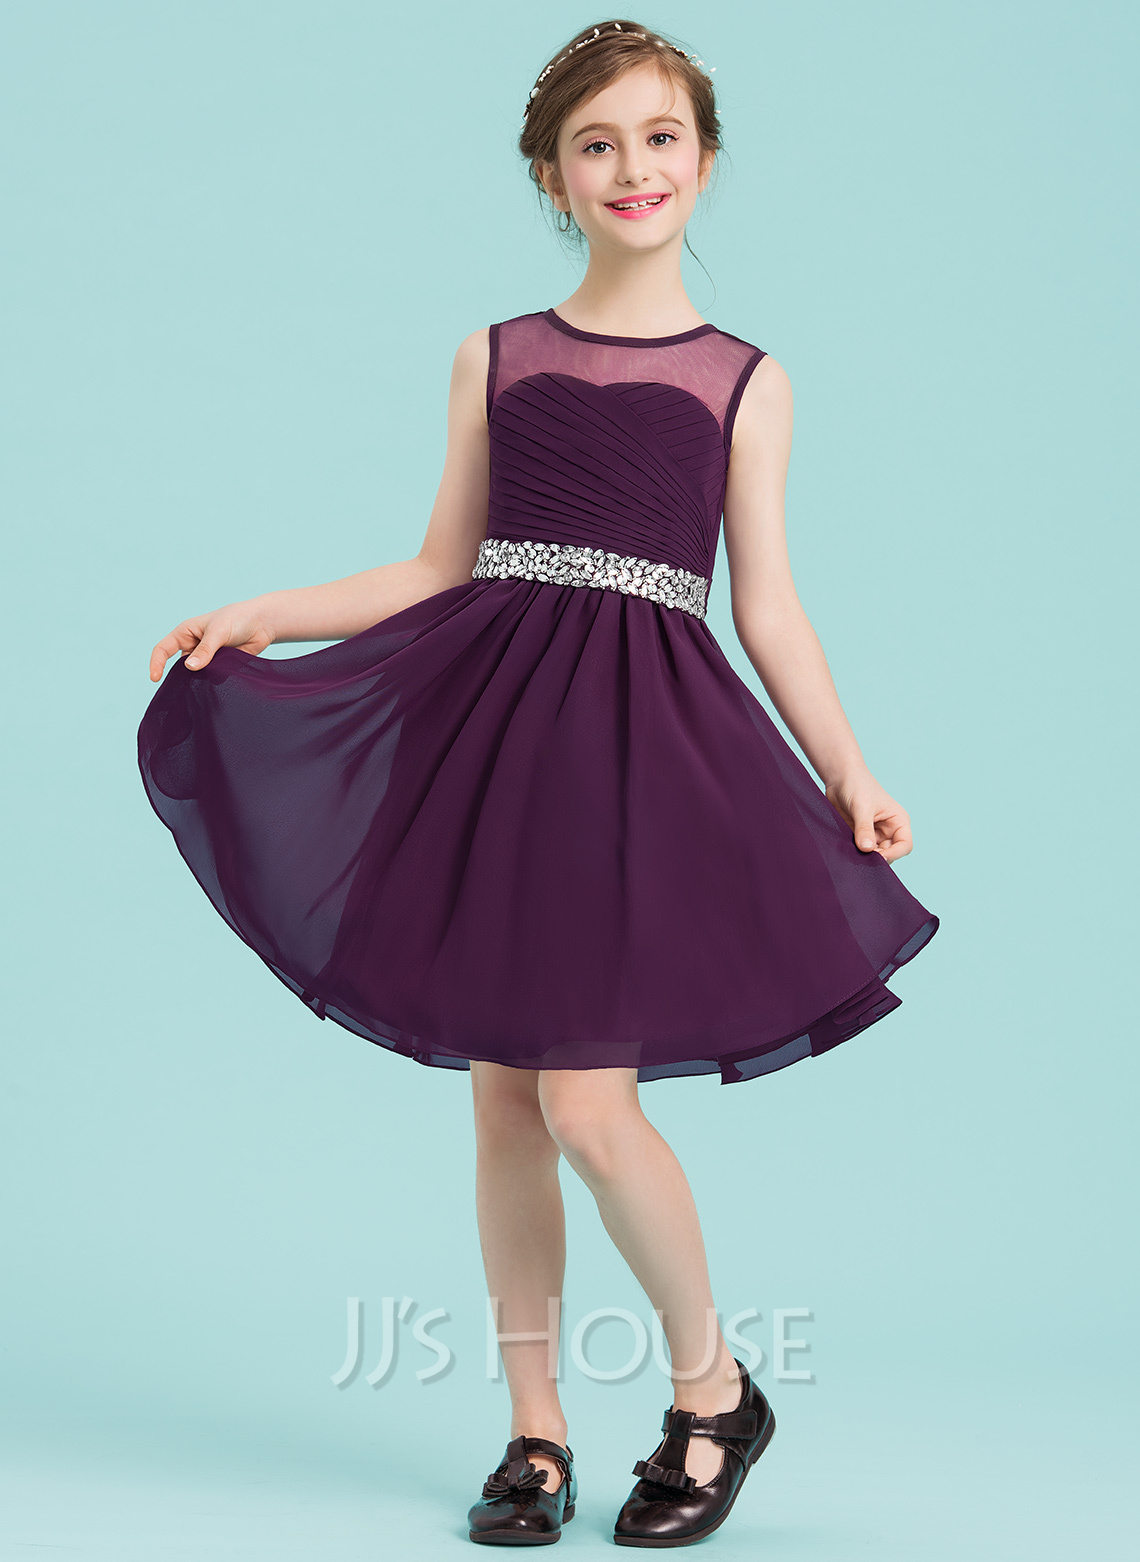 [US$ 70.00] A-Line/Princess Scoop Neck Knee-Length Chiffon Junior Bridesmaid Dress With Ruffle Beading - JJsHouse